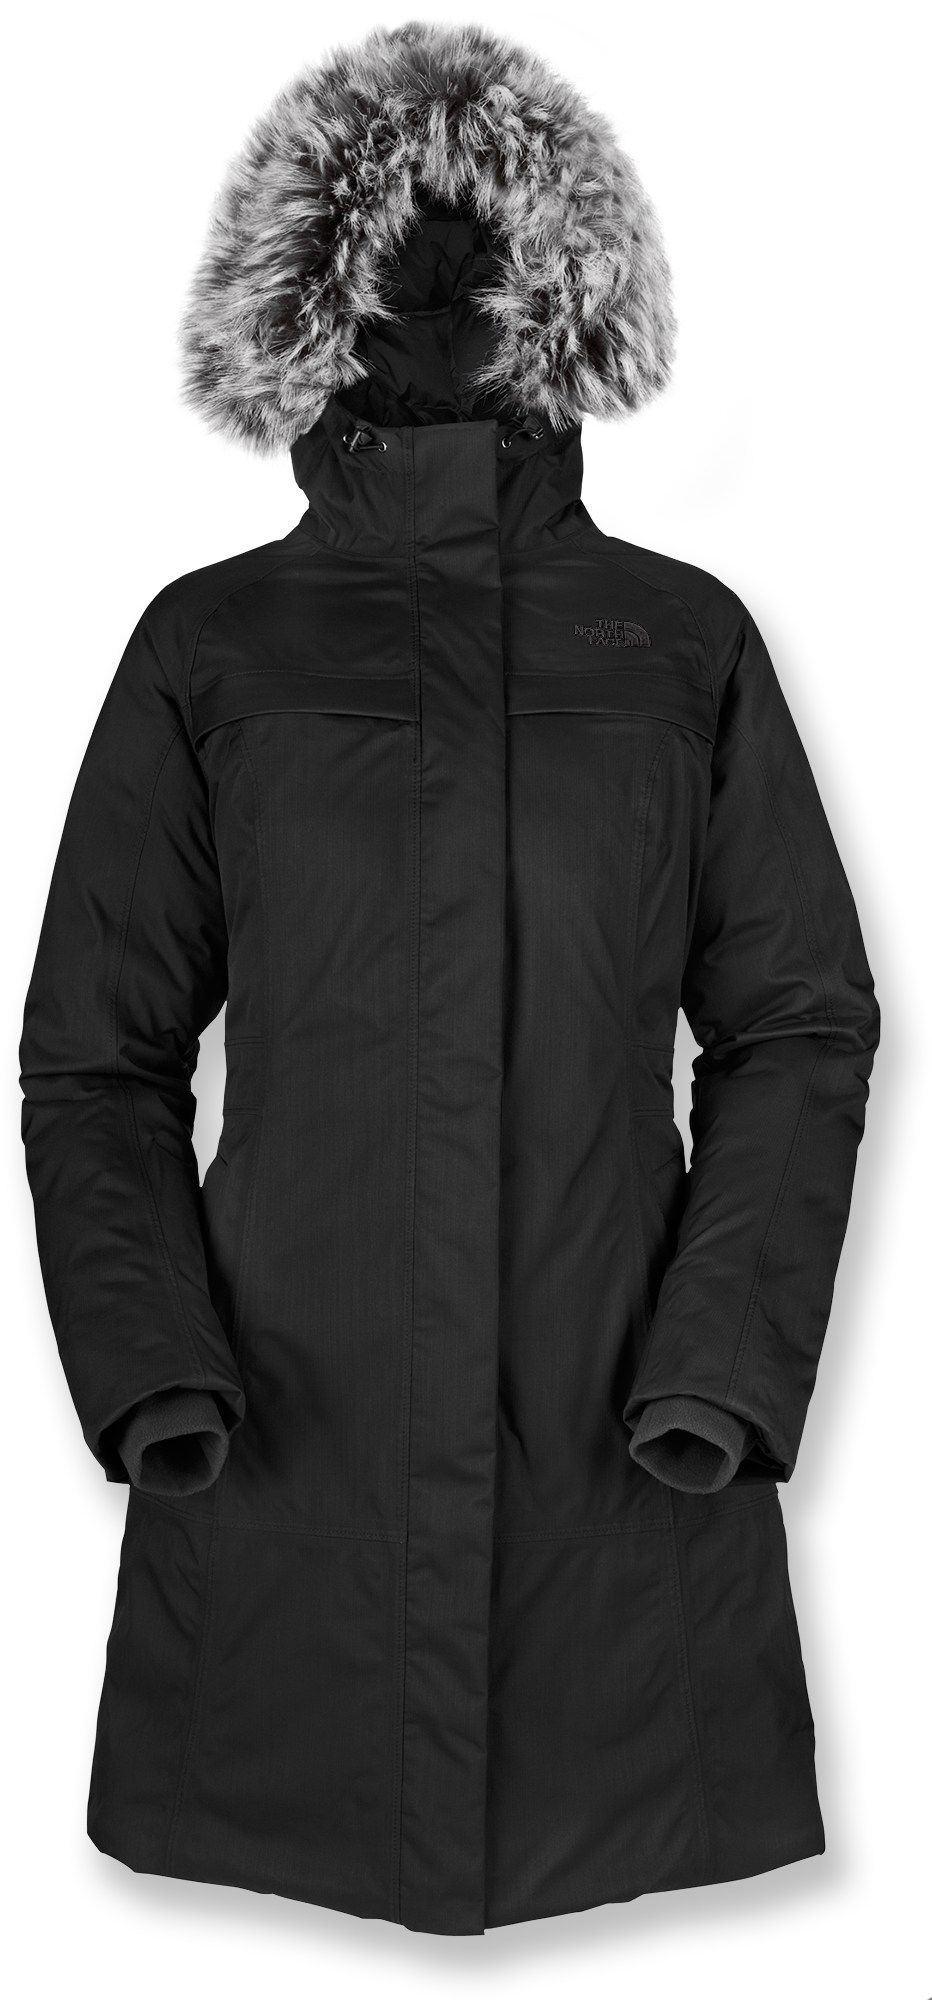 a6db9e023c  330 The North Face Arctic II Down Parka - Women s - Free Shipping at  REI.com 550 fill